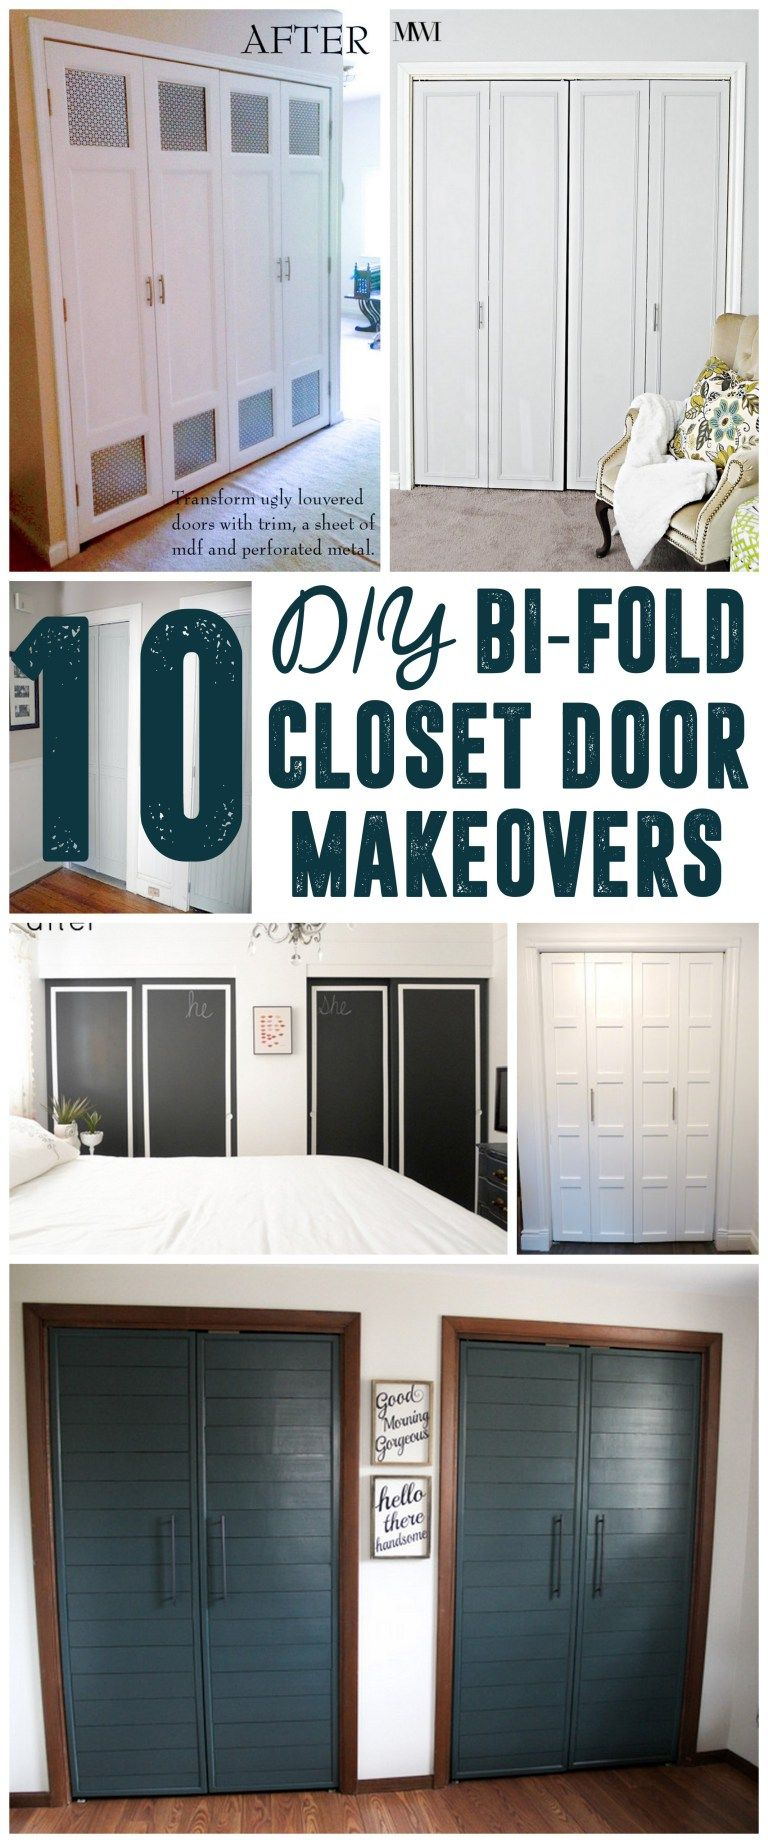 Diy Bi Fold Closet Door Makeovers 01 Home Closets Dressing